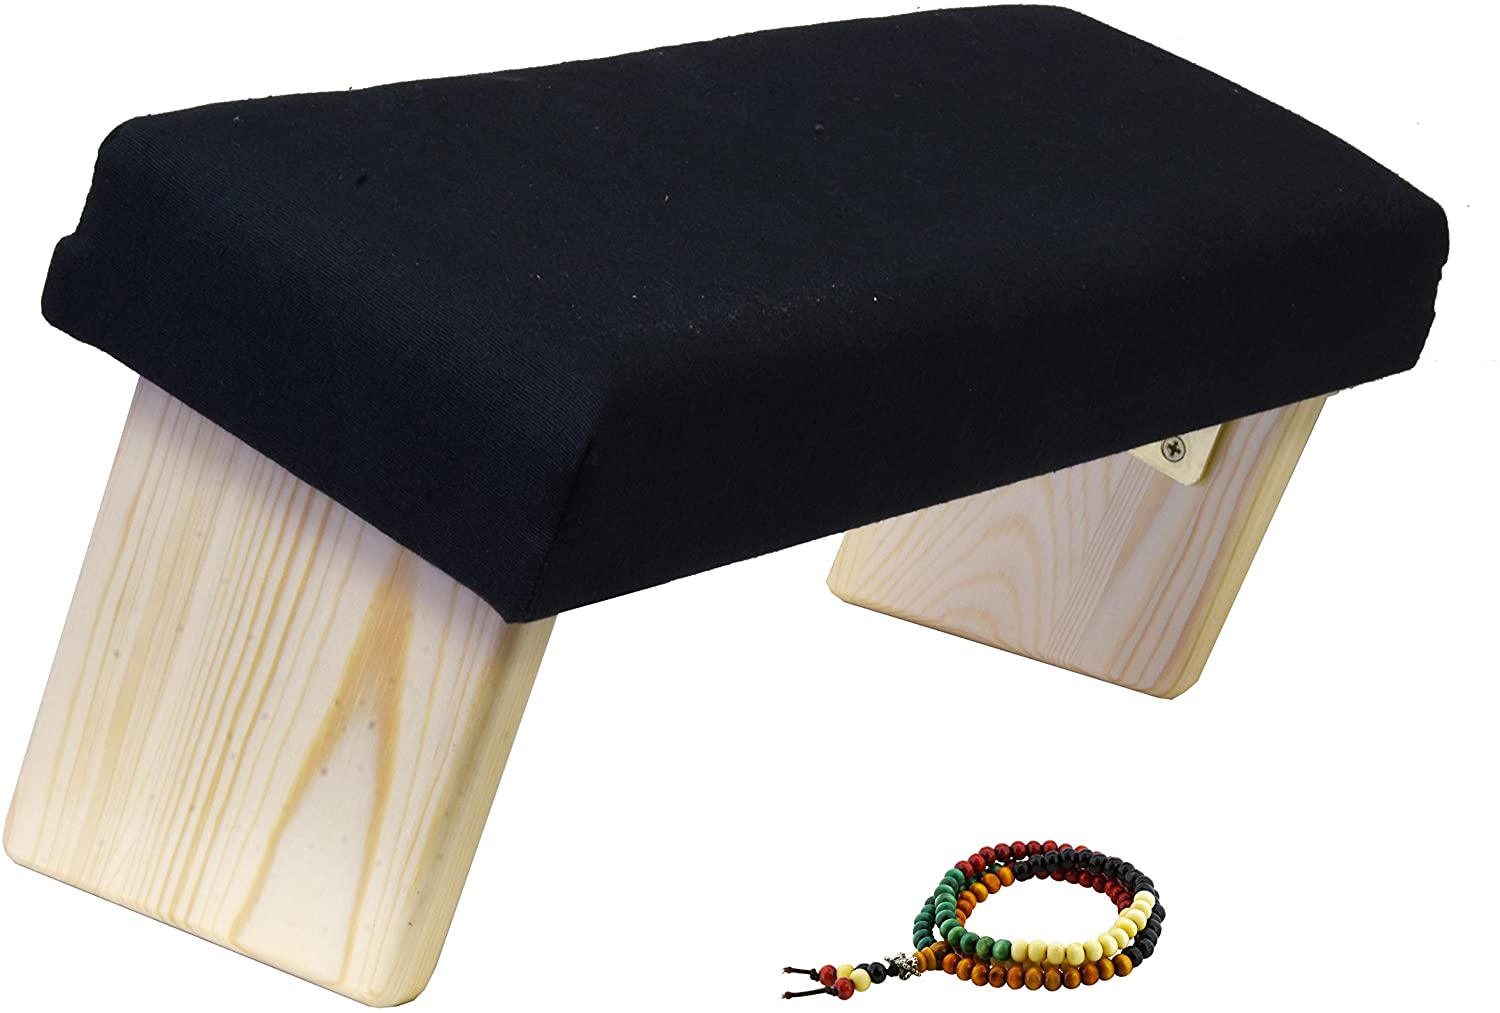 Mudra Crafts Foldable Meditation Bench, Kneeling Chair, Yoga Stool from Wood with Seat Cushion for Seiza, Zazen, Meditating